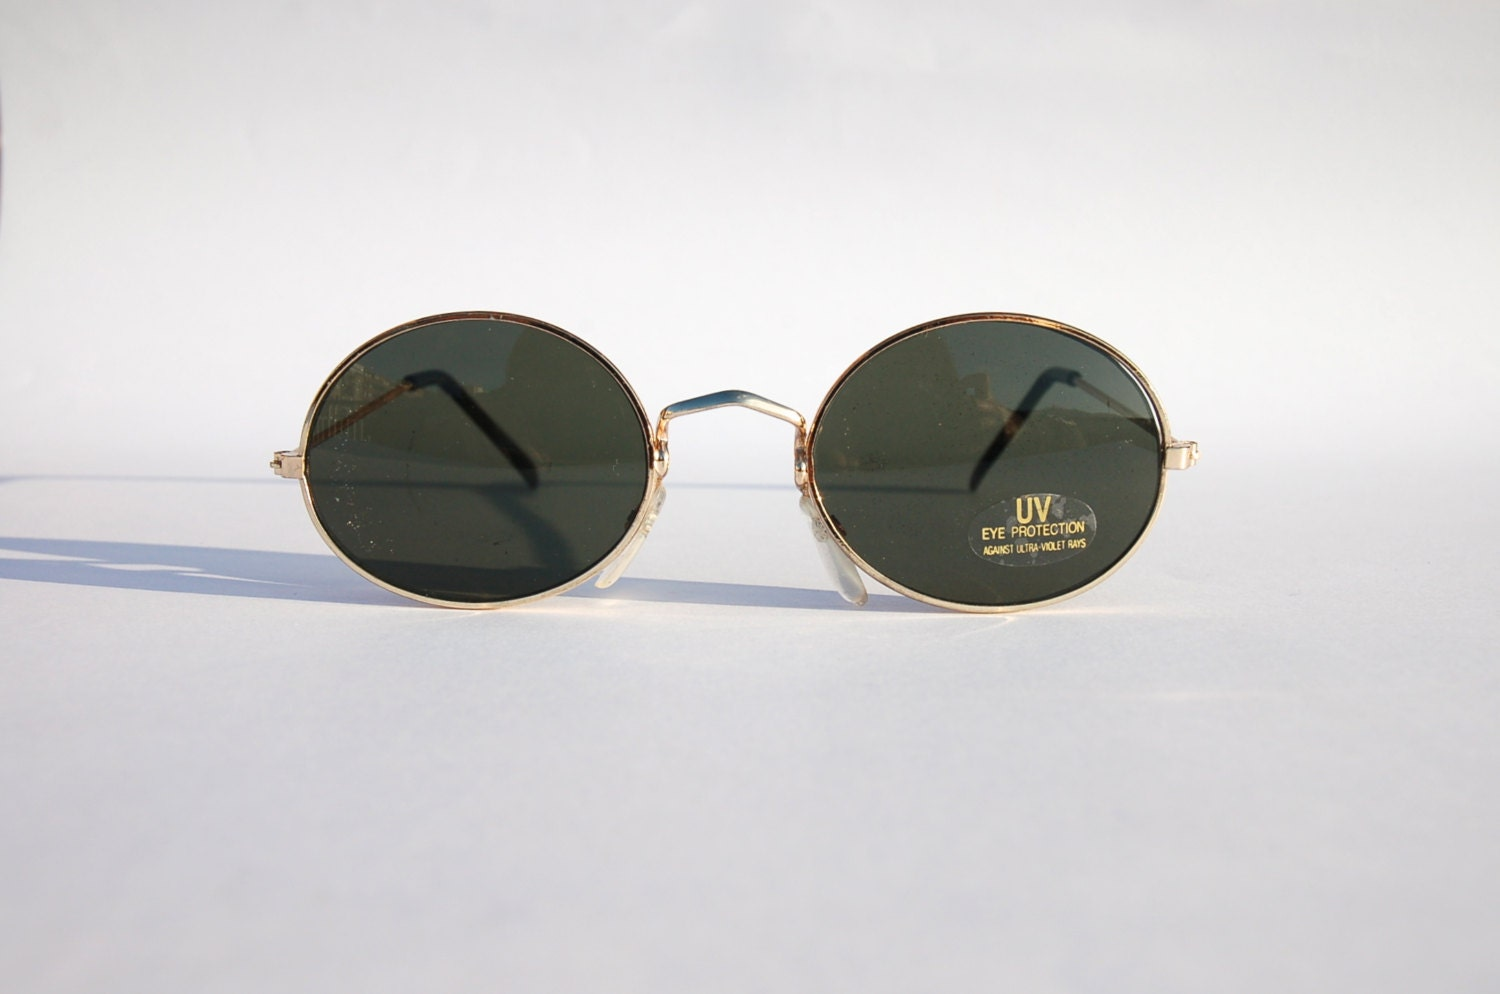 b70e9181bb8 AUTHENTIC VINTAGE 90S CIRCLE SUNGLASSES/ OVAL SHADES W GOLD TONE FRAME -  NOS DEAD STOCK STEAMPUNK /GRUNGE/RAVE on The Hunt